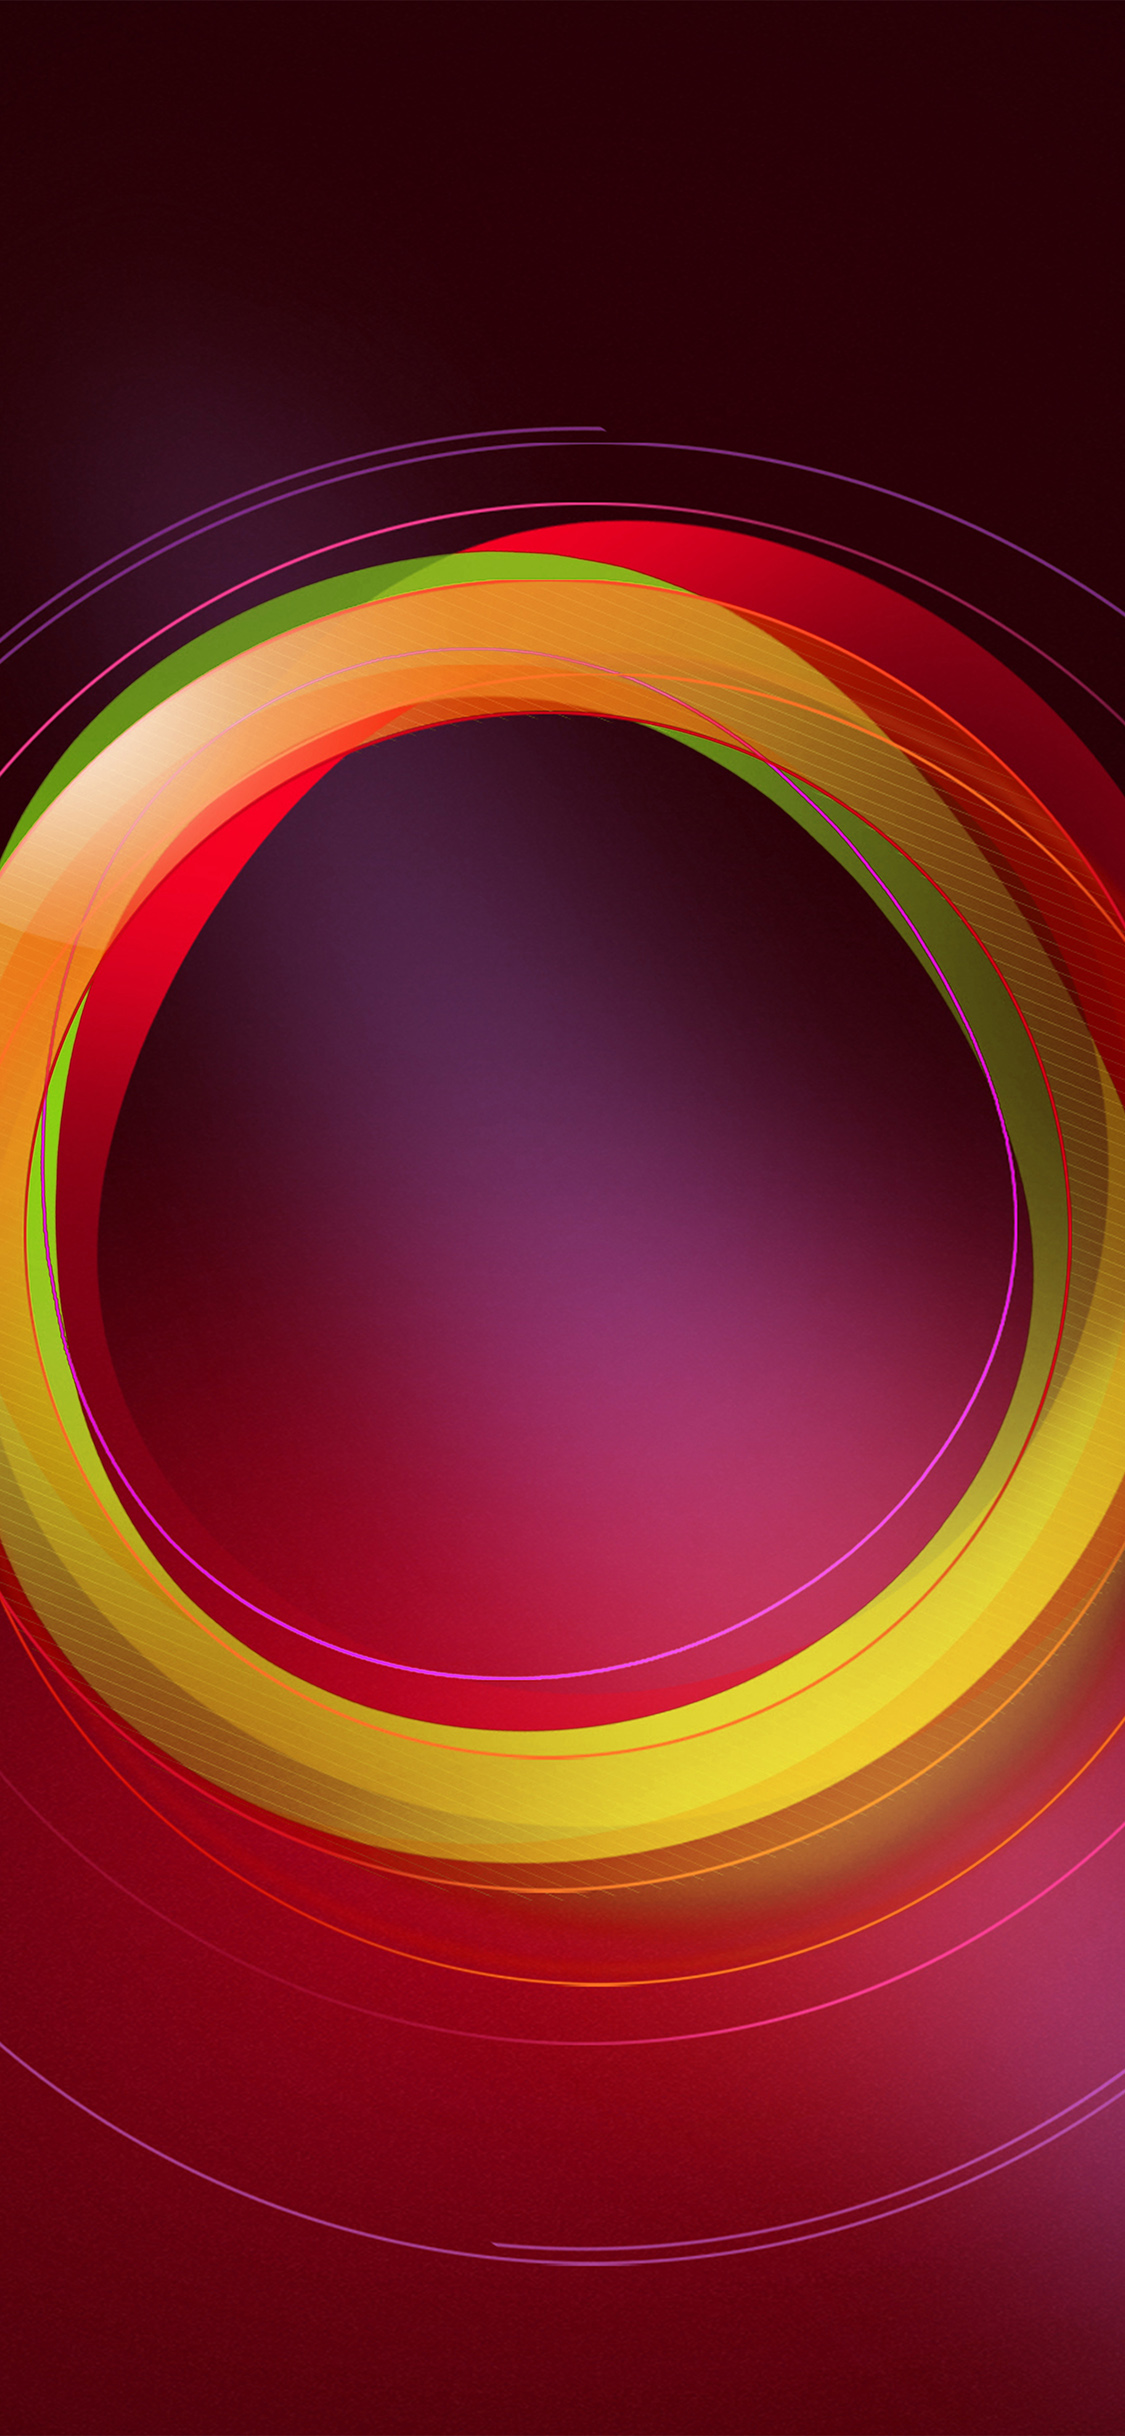 iPhonexpapers.com-Apple-iPhone-wallpaper-vw27-circle-abstract-red-pattern-background